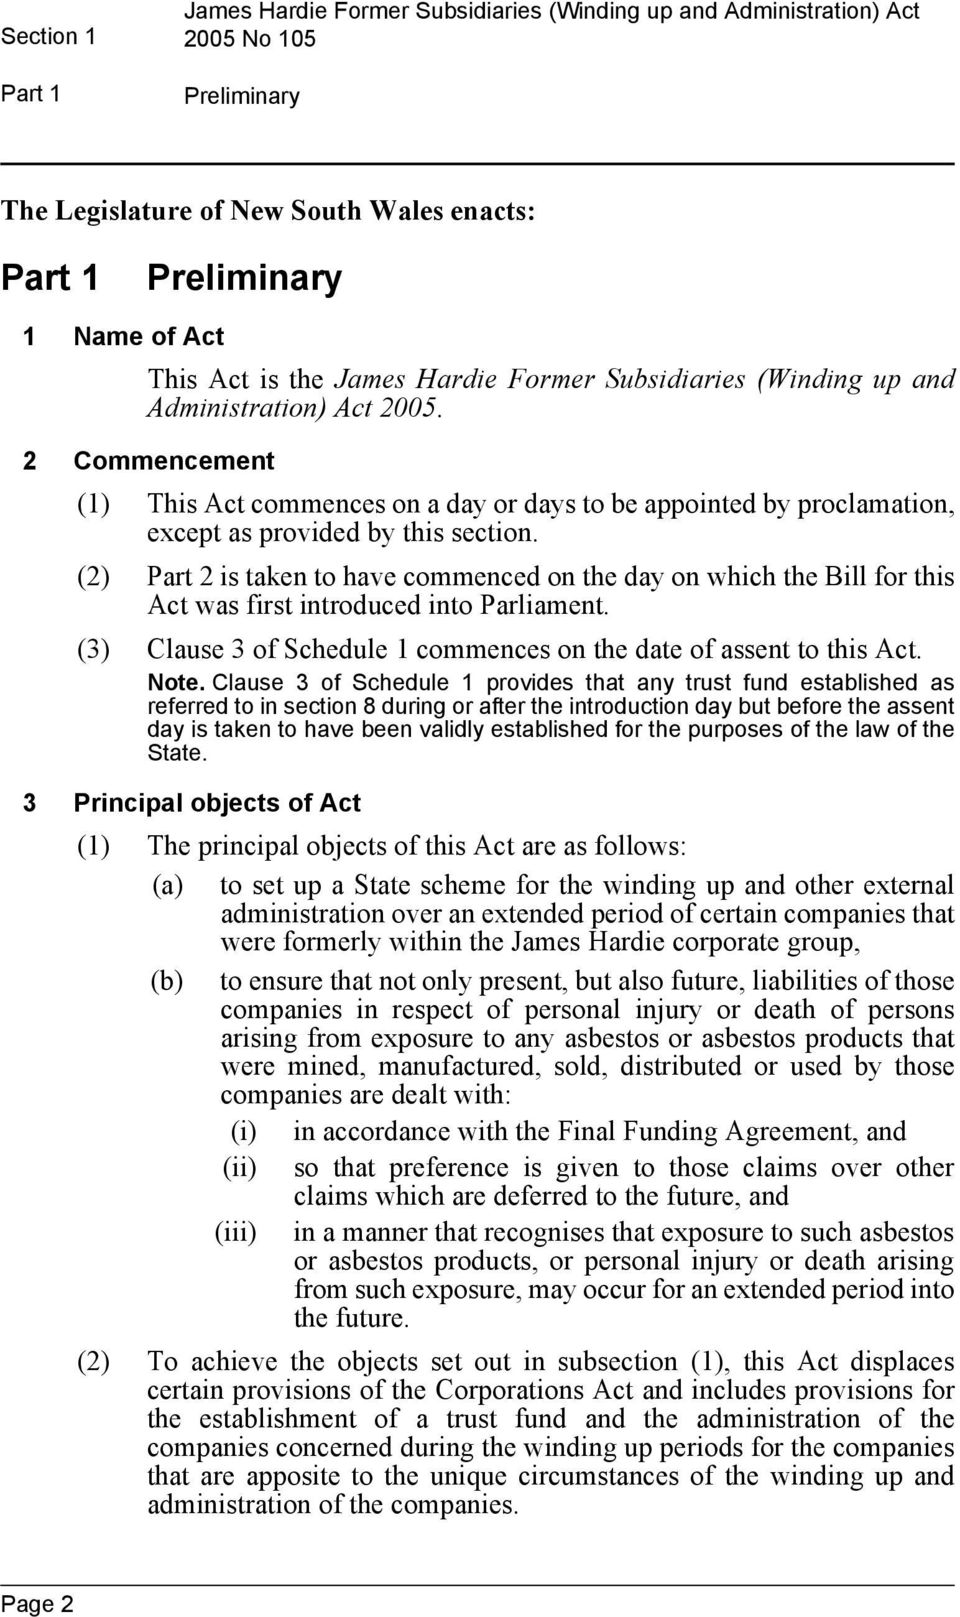 (2) Part 2 is taken to have commenced on the day on which the Bill for this Act was first introduced into Parliament. (3) Clause 3 of Schedule 1 commences on the date of assent to this Act. Note.